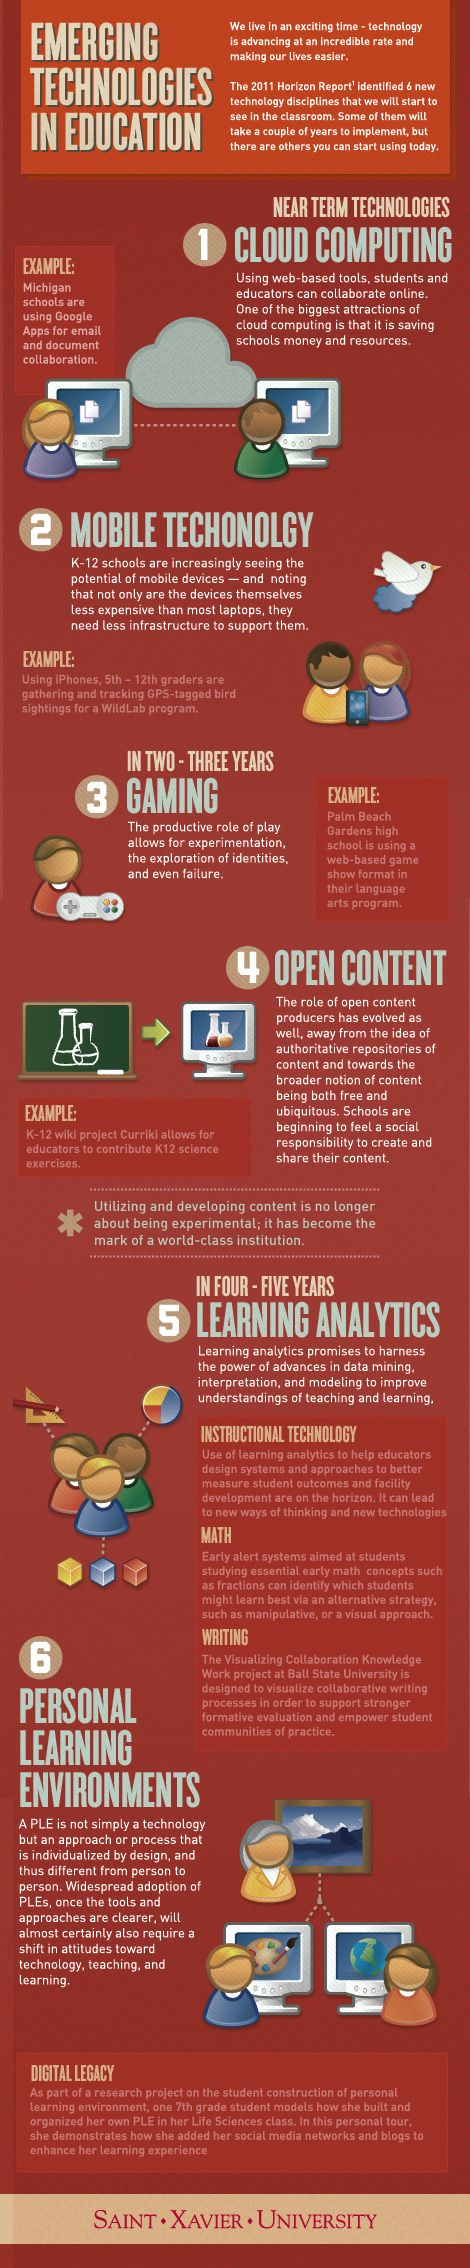 Six Emerging Technologies in Education (from Saint Xavier University)